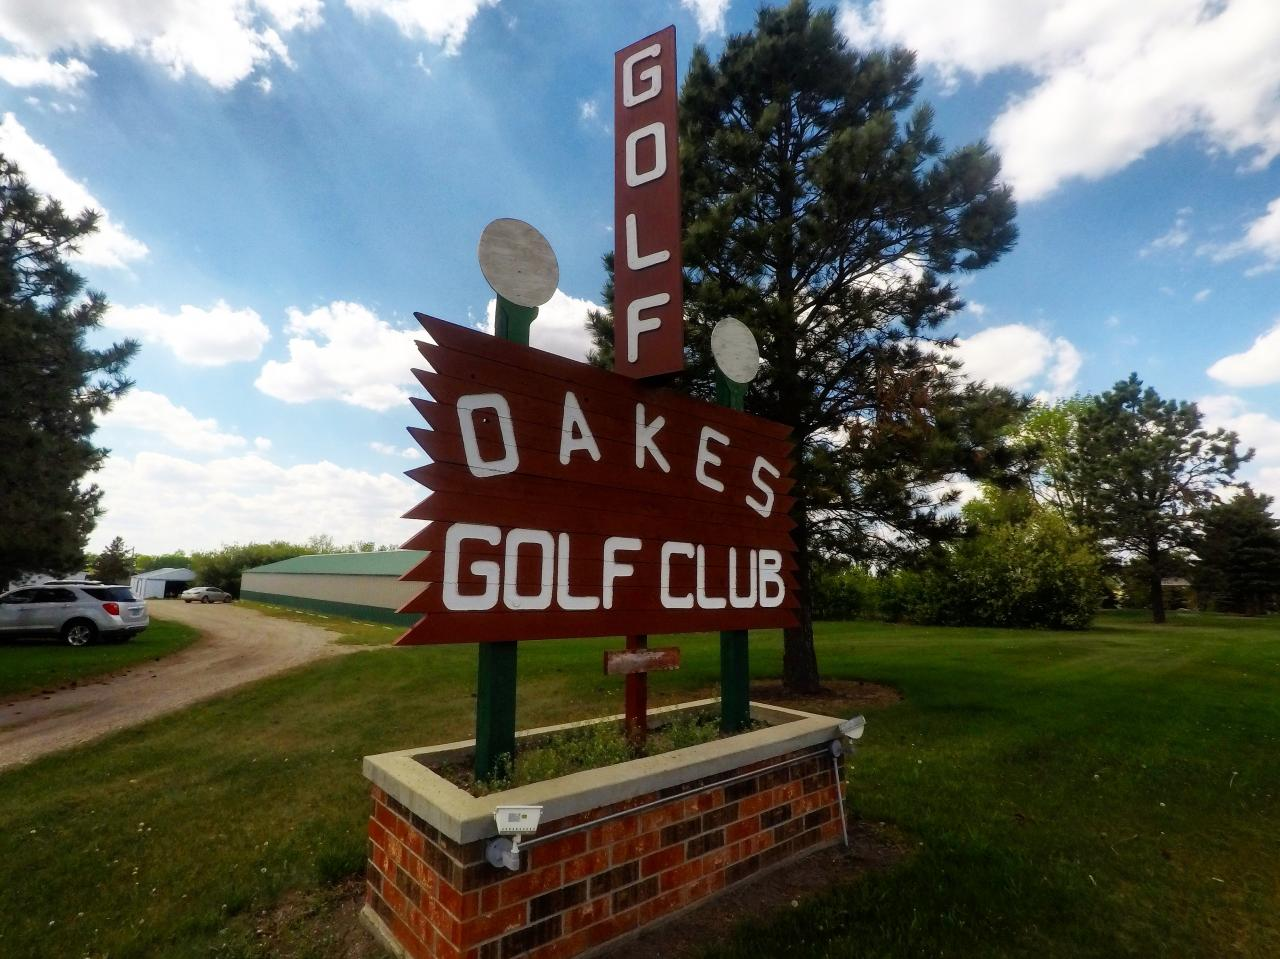 Oakes Golf Club